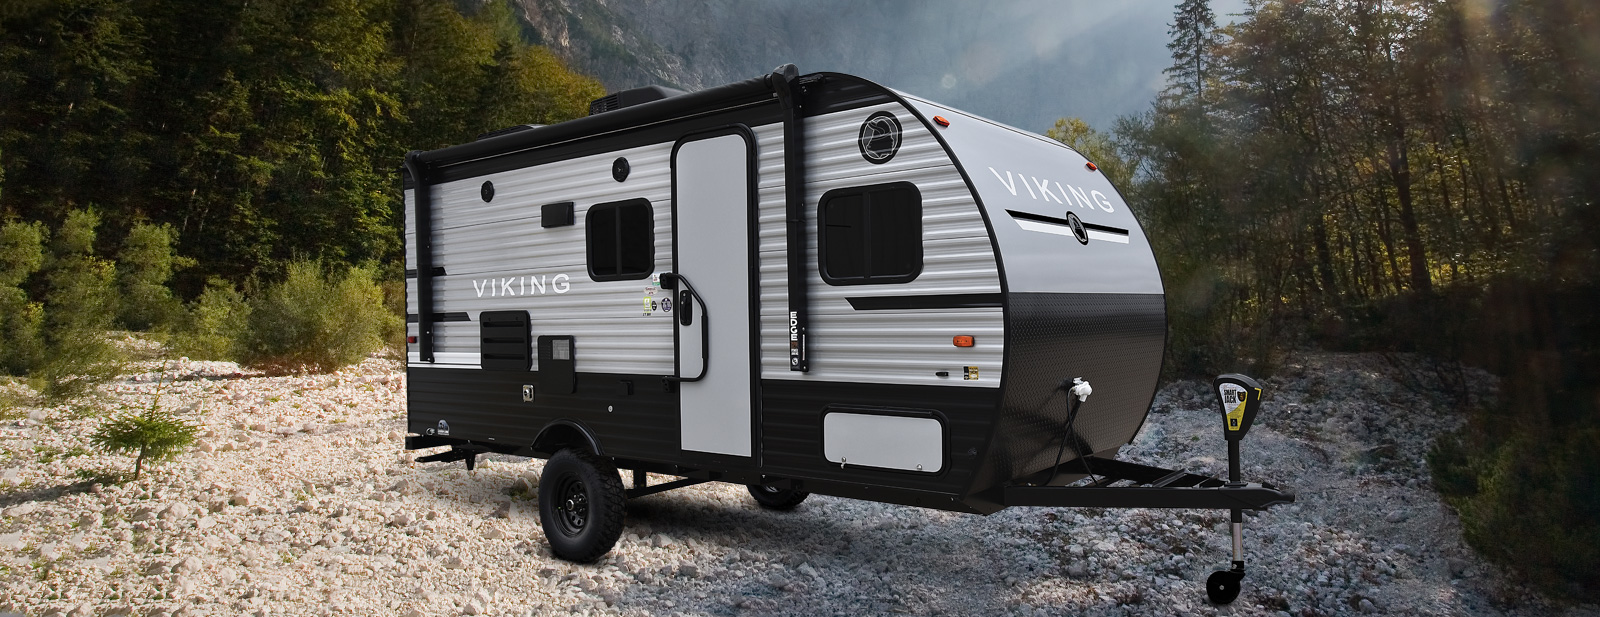 Viking Ultra-Lite Travel Trailers by Coachmen RV